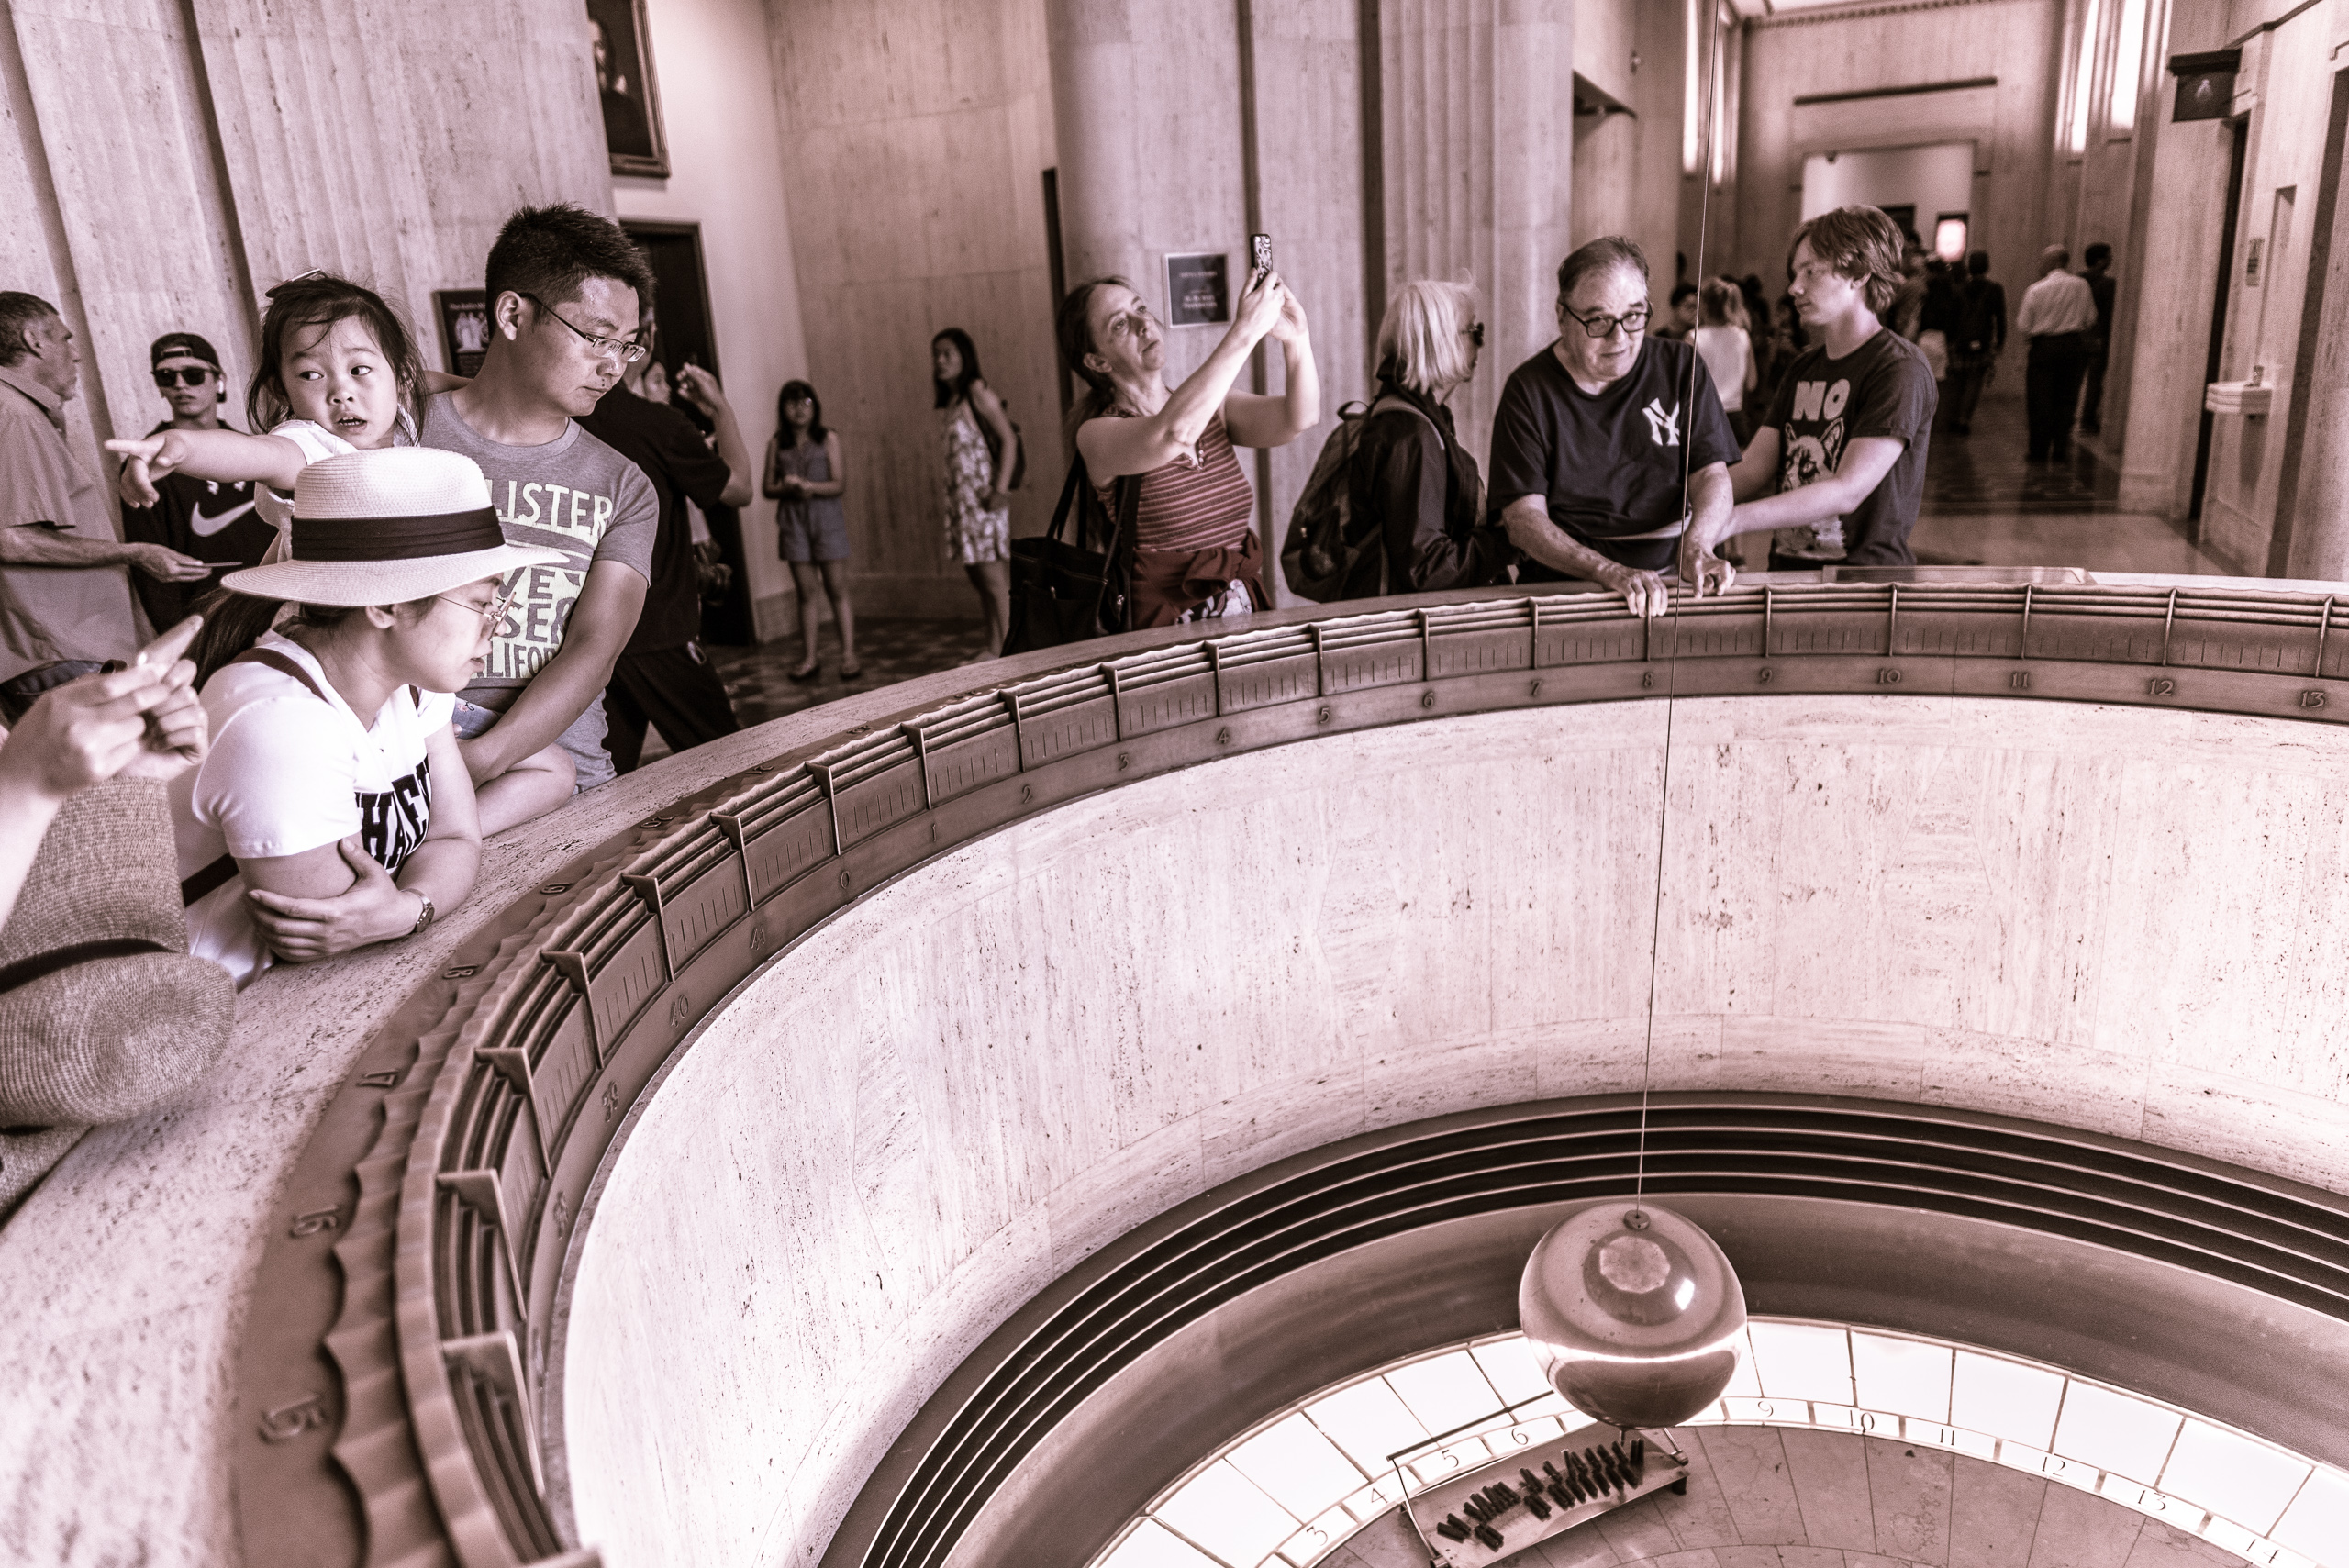 visitors at the Griffith Observatory in Griffith Park, Los Angeles, California look on as the large pendulum sways from side to side